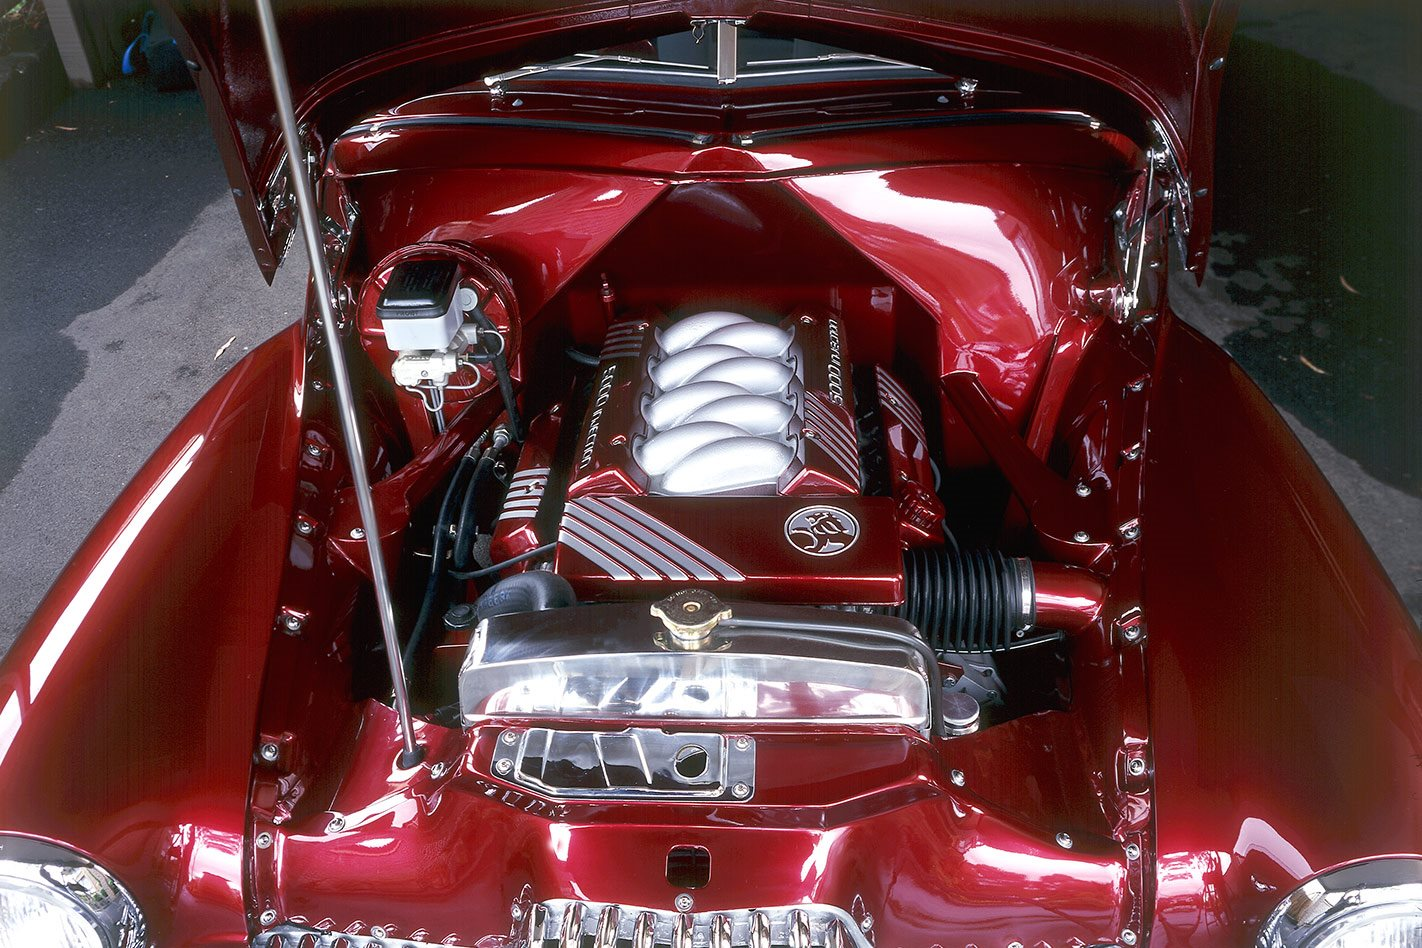 Holden FX engine bay